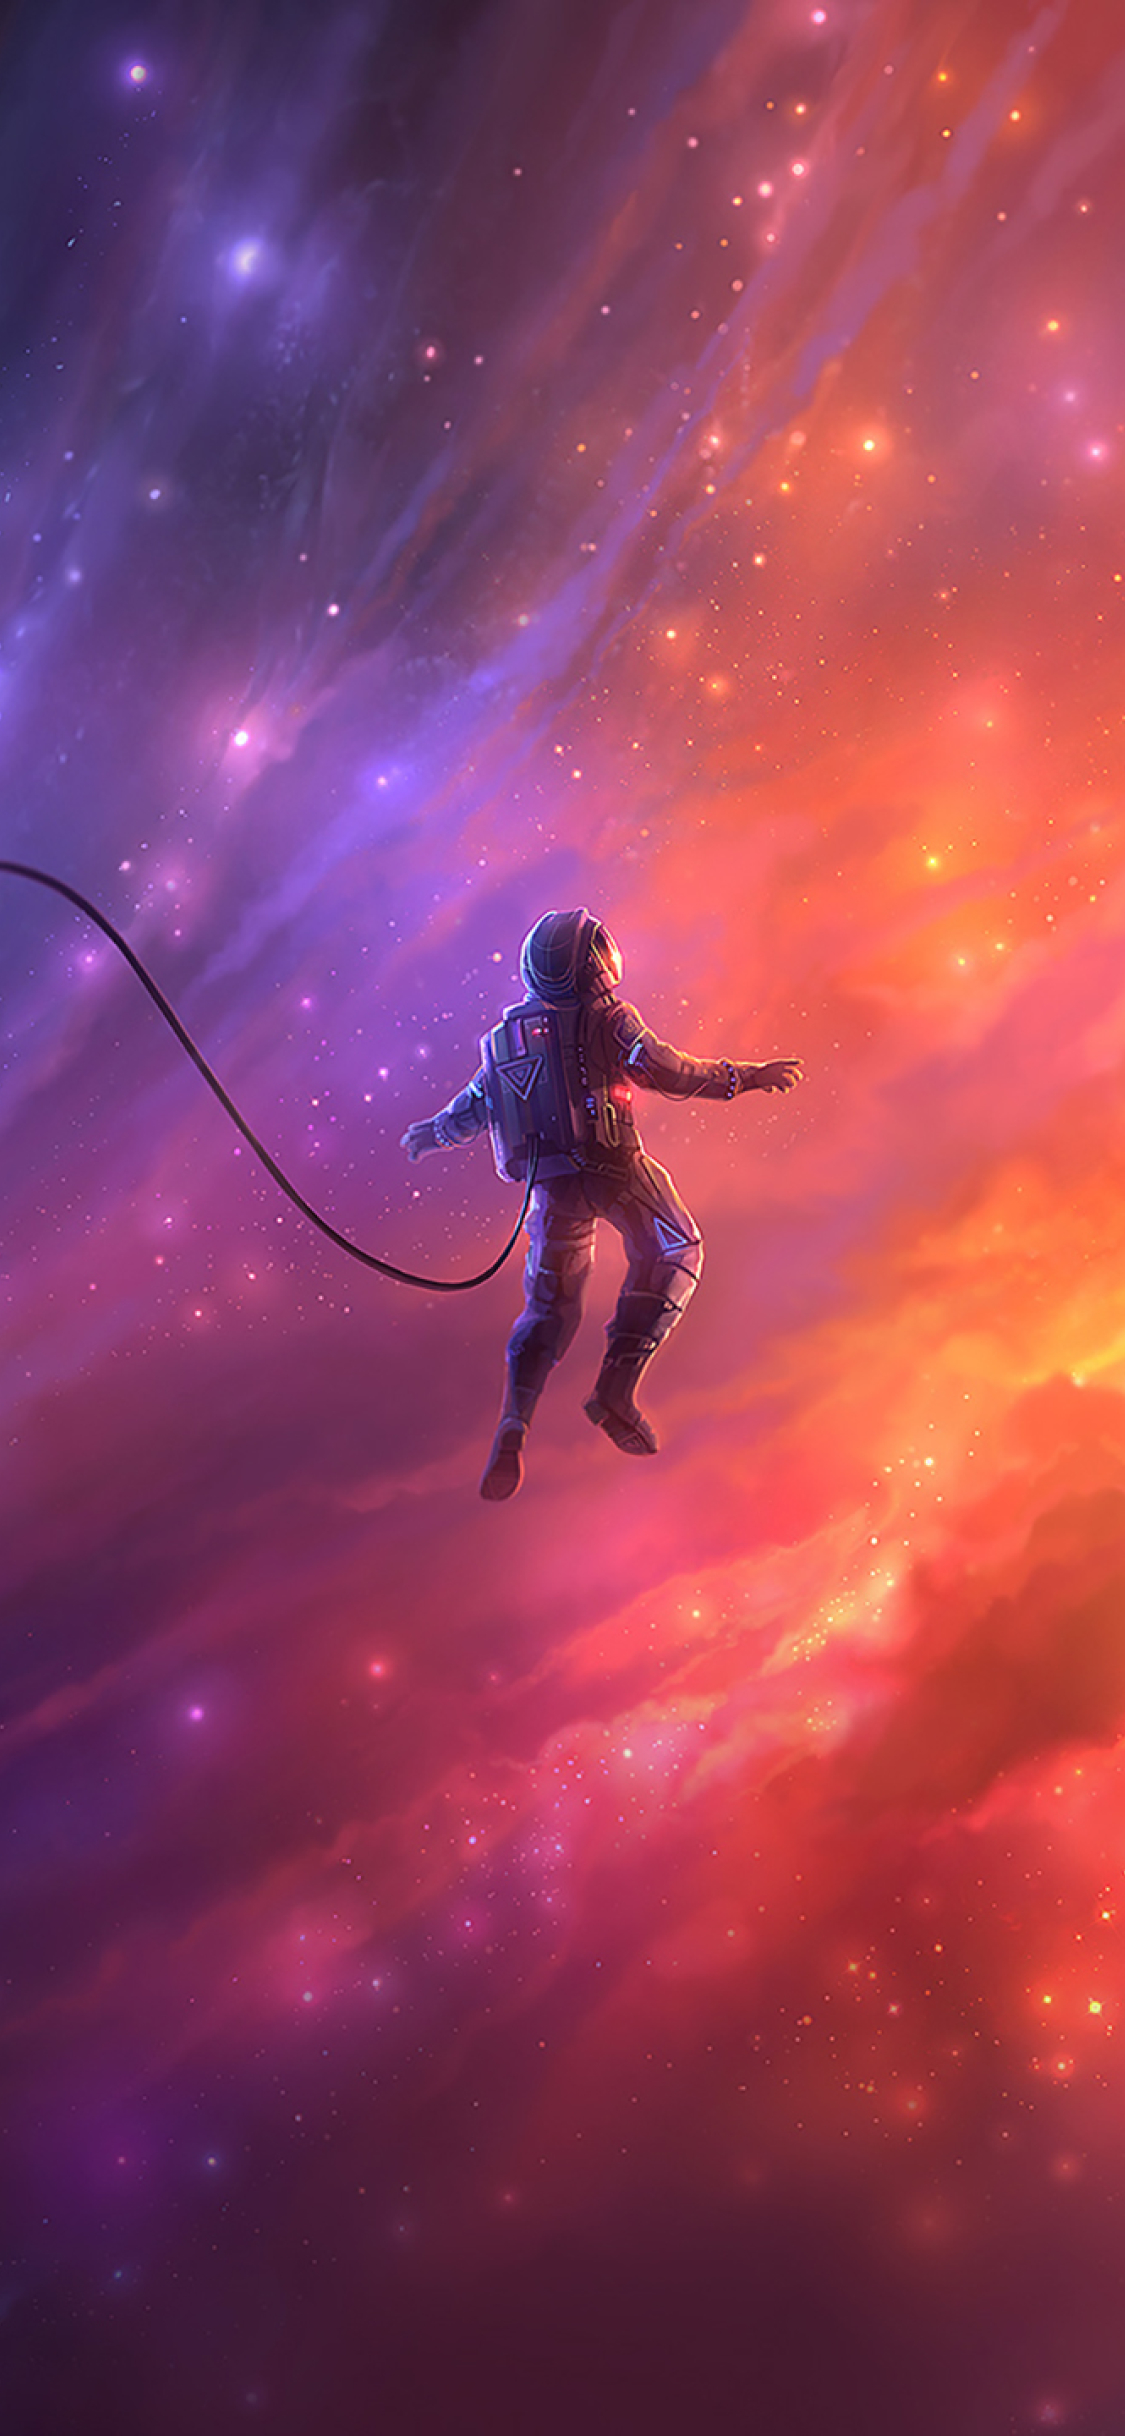 1125x2436 Astronaut In Space Iphone XS,Iphone 10,Iphone X ...